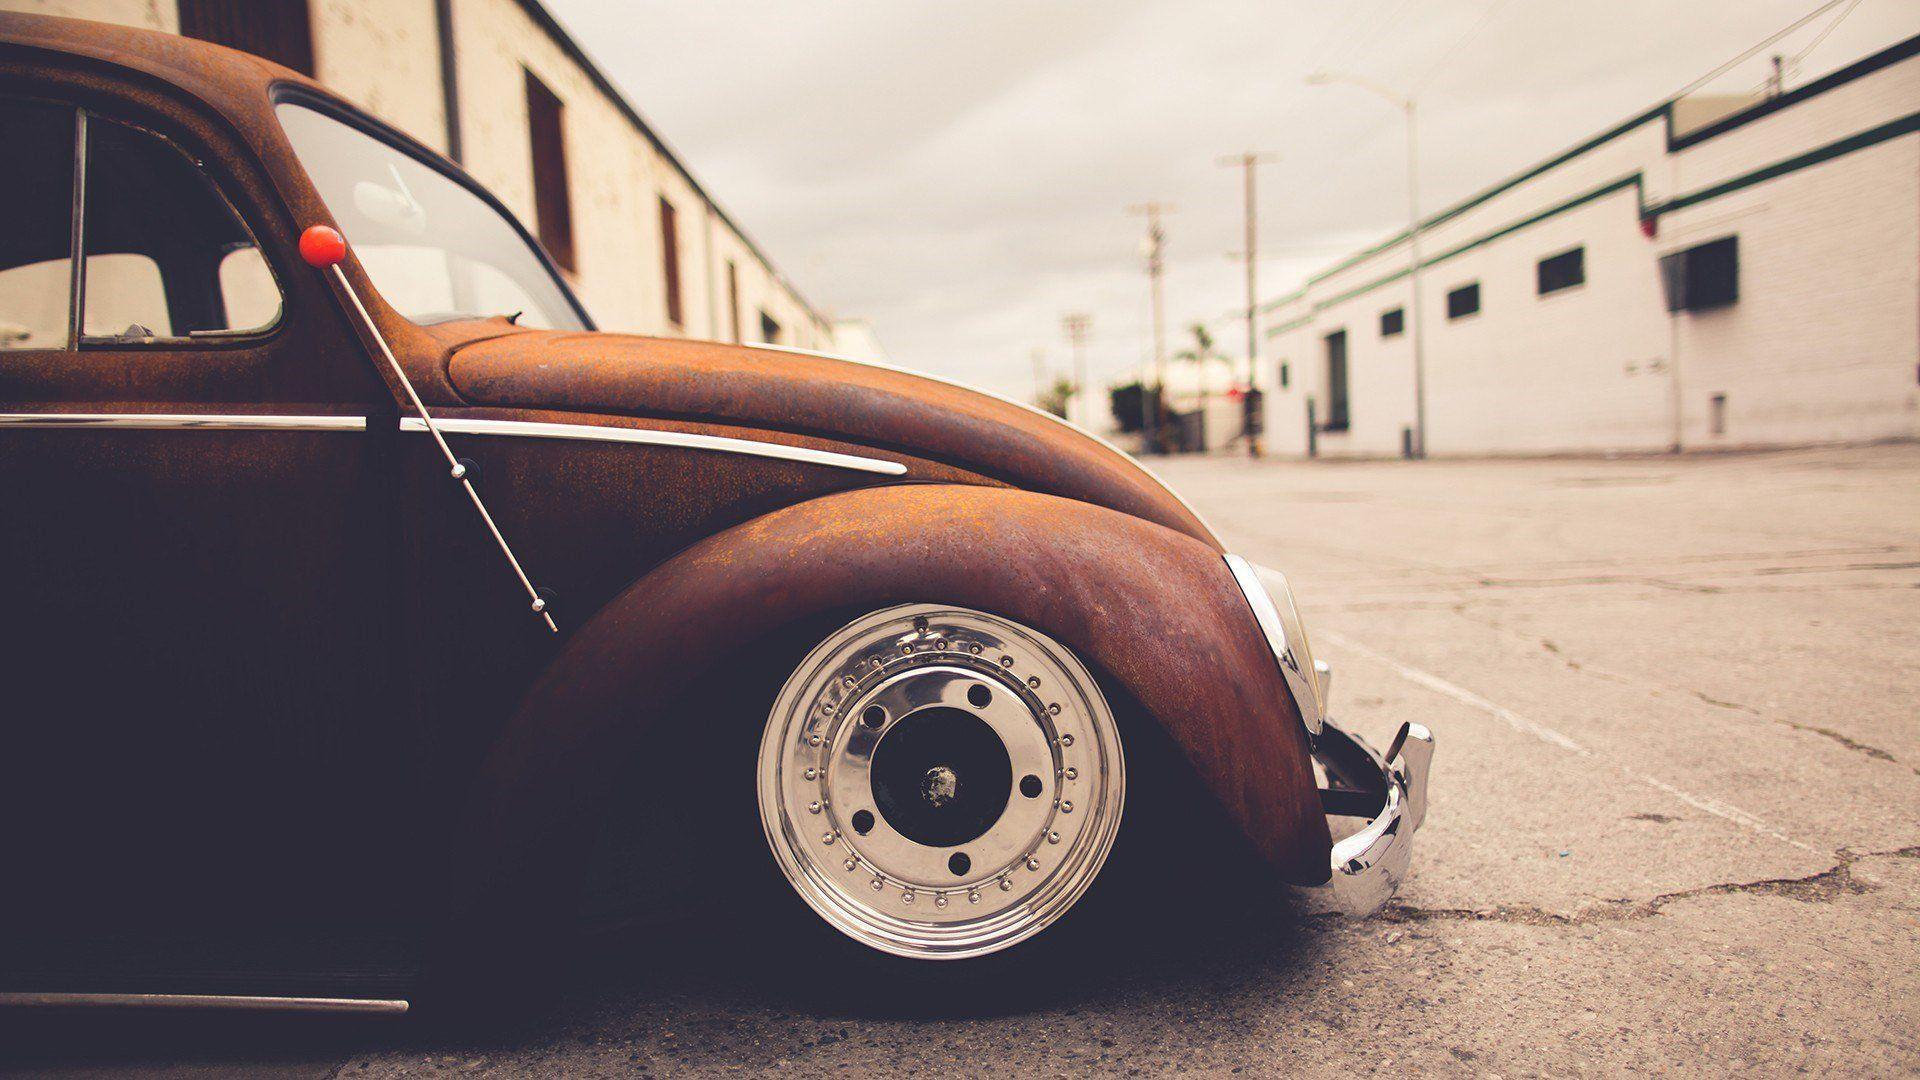 fusca wallpapers | WallpaperUP